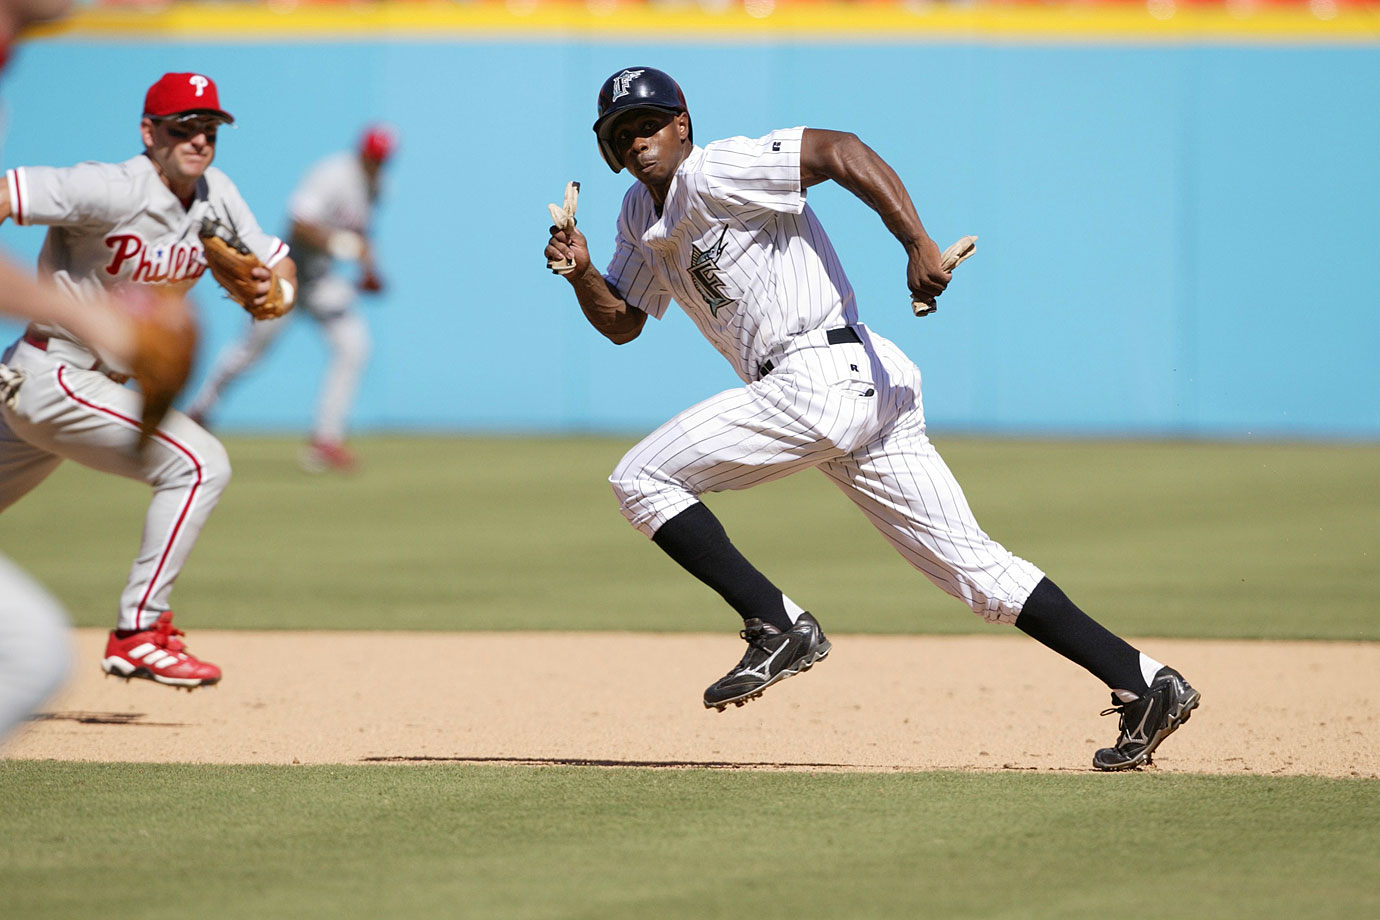 Juan Pierre's 14-year World Series-winning career ended with his retirement on Feb. 27. Though the outfielder played for six teams on his way to 2,217 hits and 614 stolen bases, he'll be best remembered for his role on the Florida Marlins' 2003 title-winning squad. That season, Pierre finished a career-best 10th in MVP voting, as he hit .305 and led the league with 65 stolen bases.